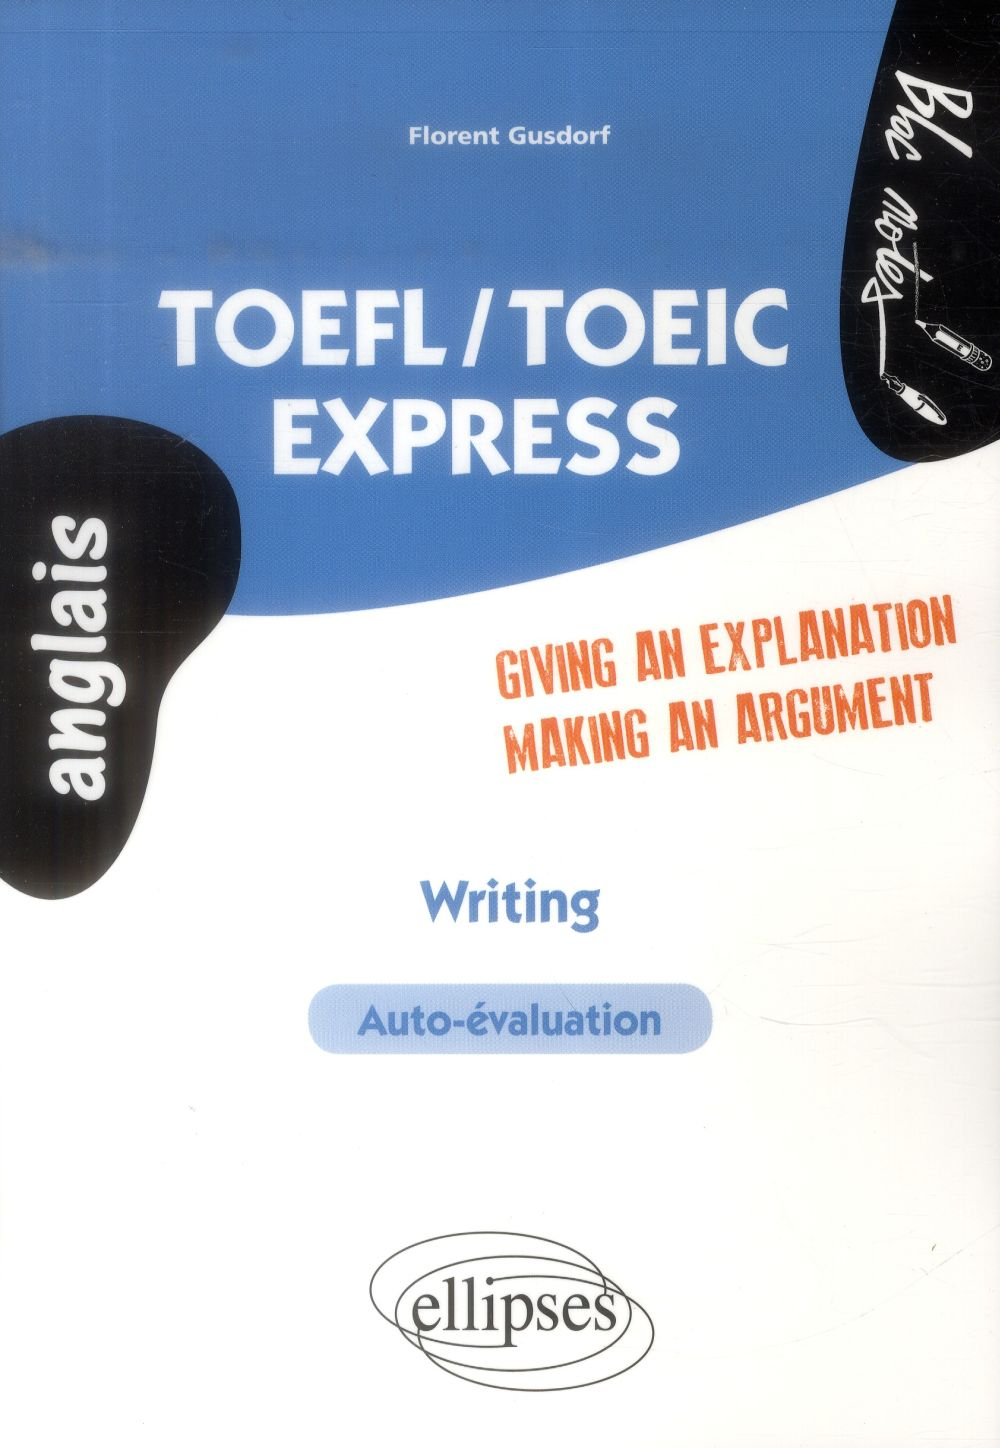 Toefl/Toeic Express Giving An Explanation Making An Argument Wrinting Auto-Evaluation